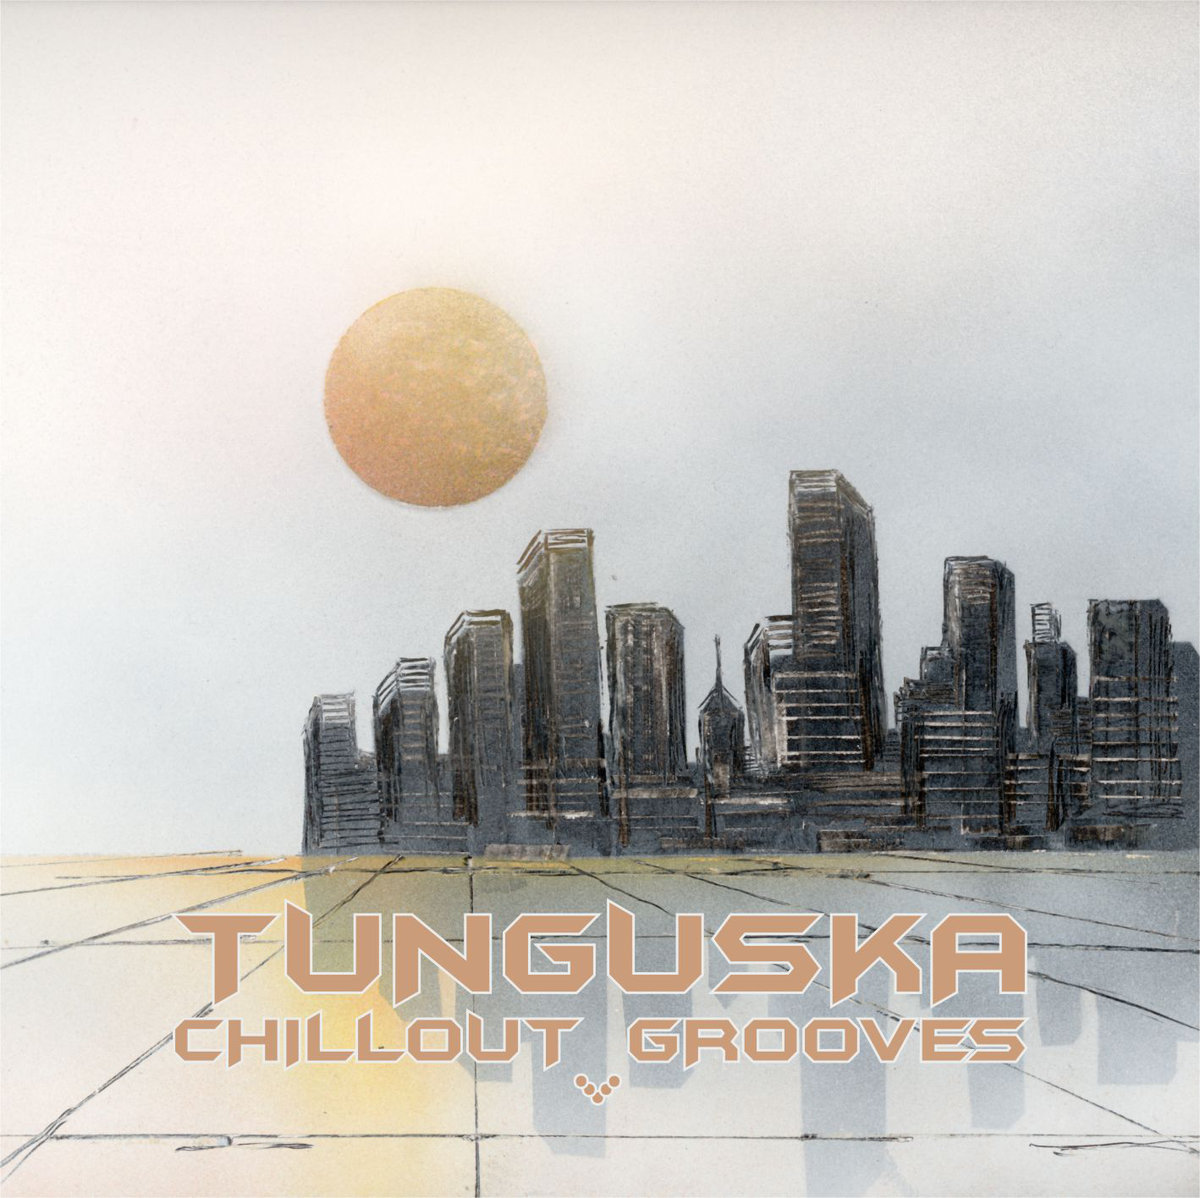 Fox - Alone (Original mix by Fox) @ 'Tunguska Chillout Grooves - Volume 5' album (electronic, ambient)